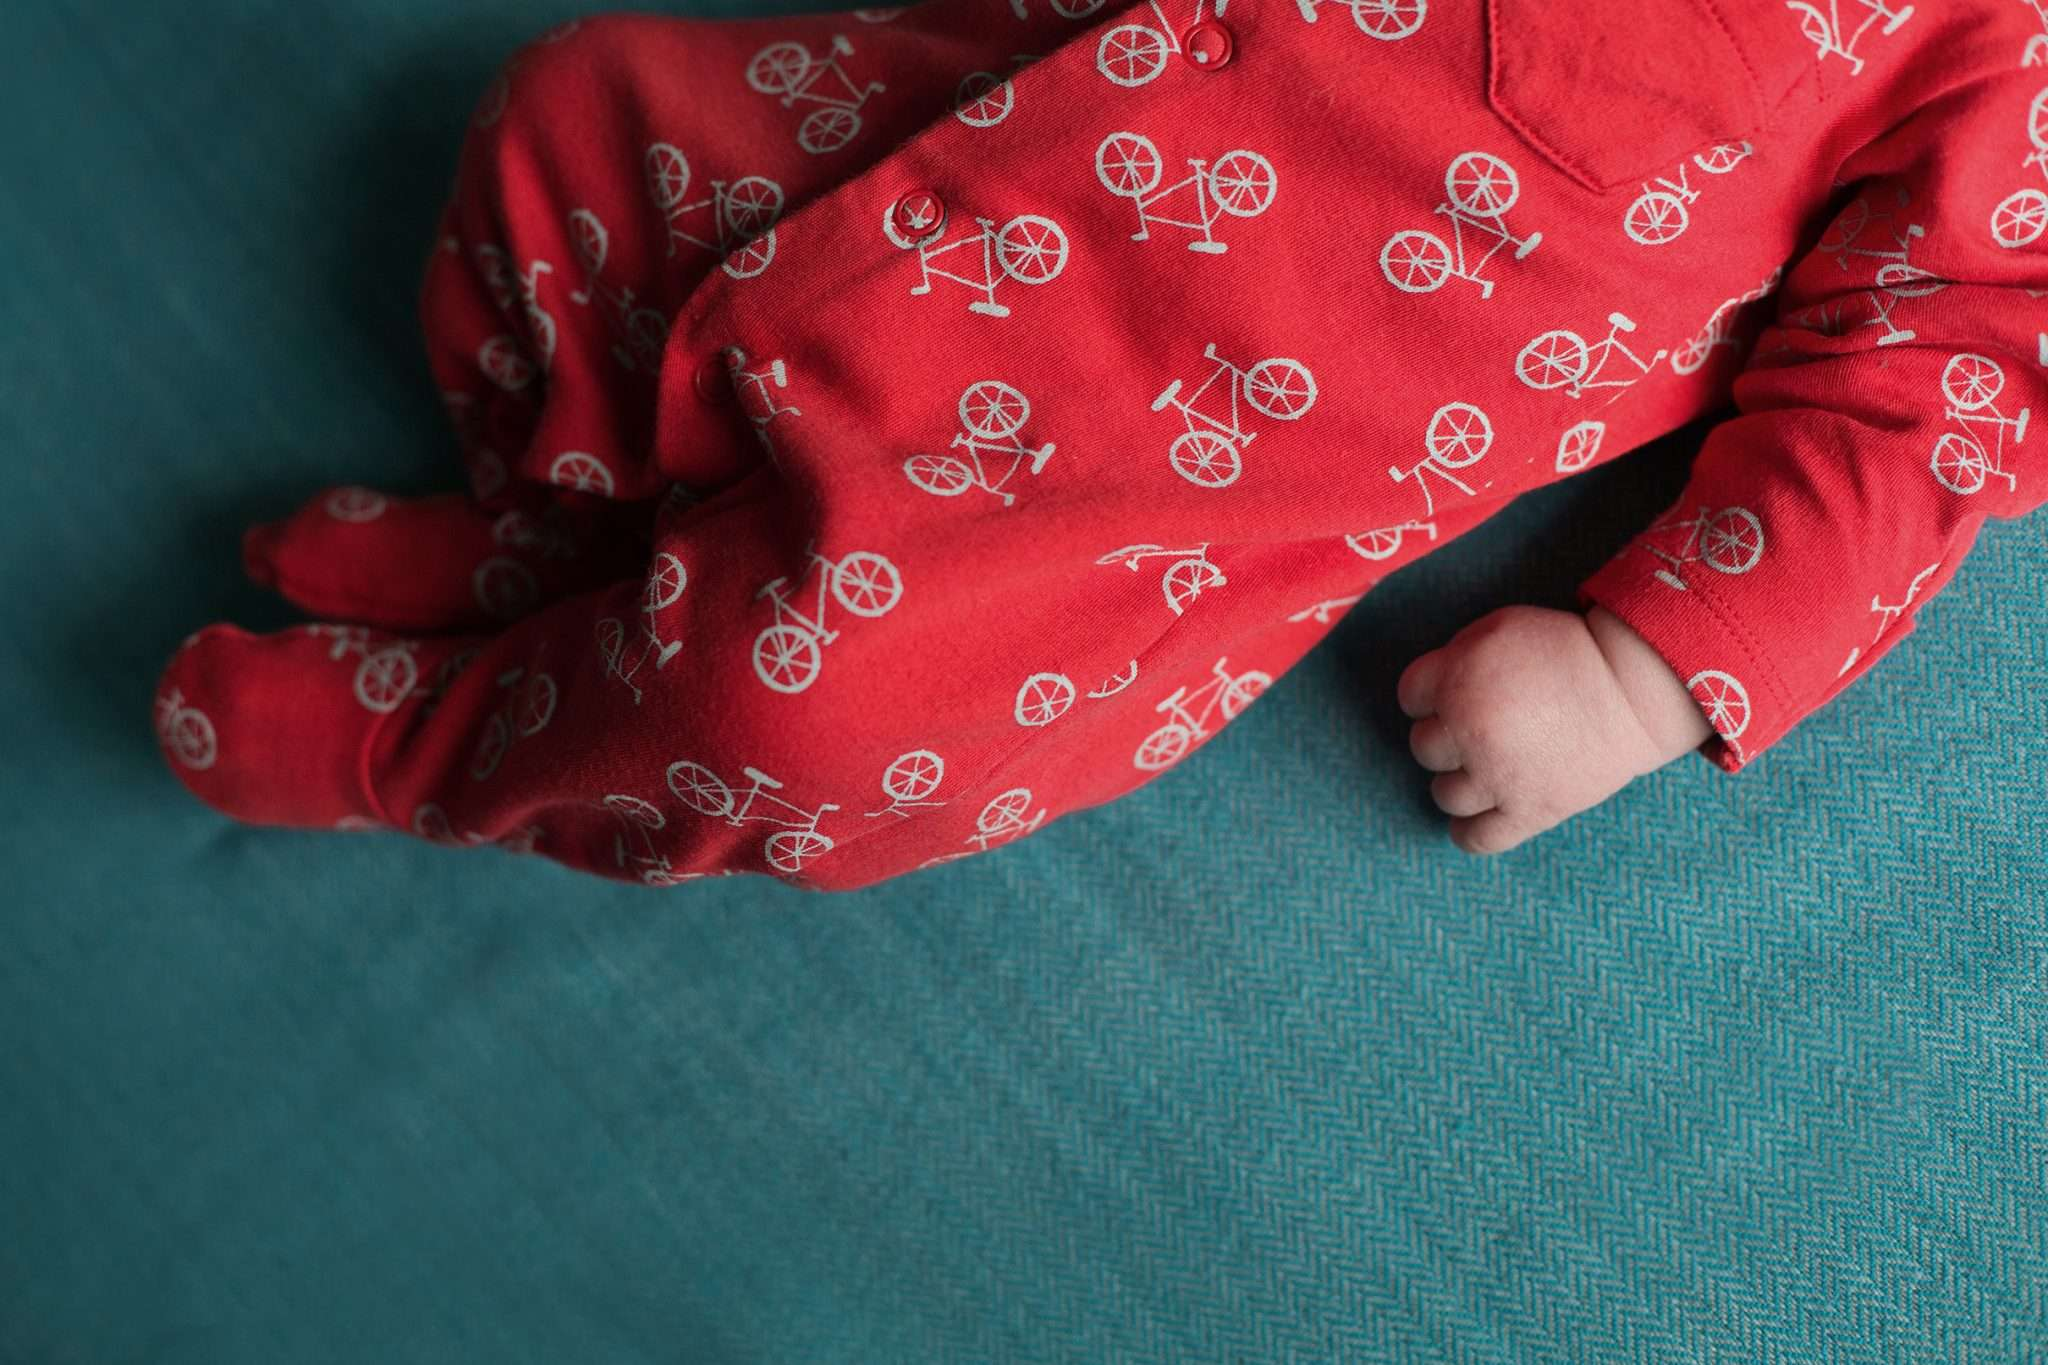 A photo of a babys hand with bright coloured babygrow and blanket